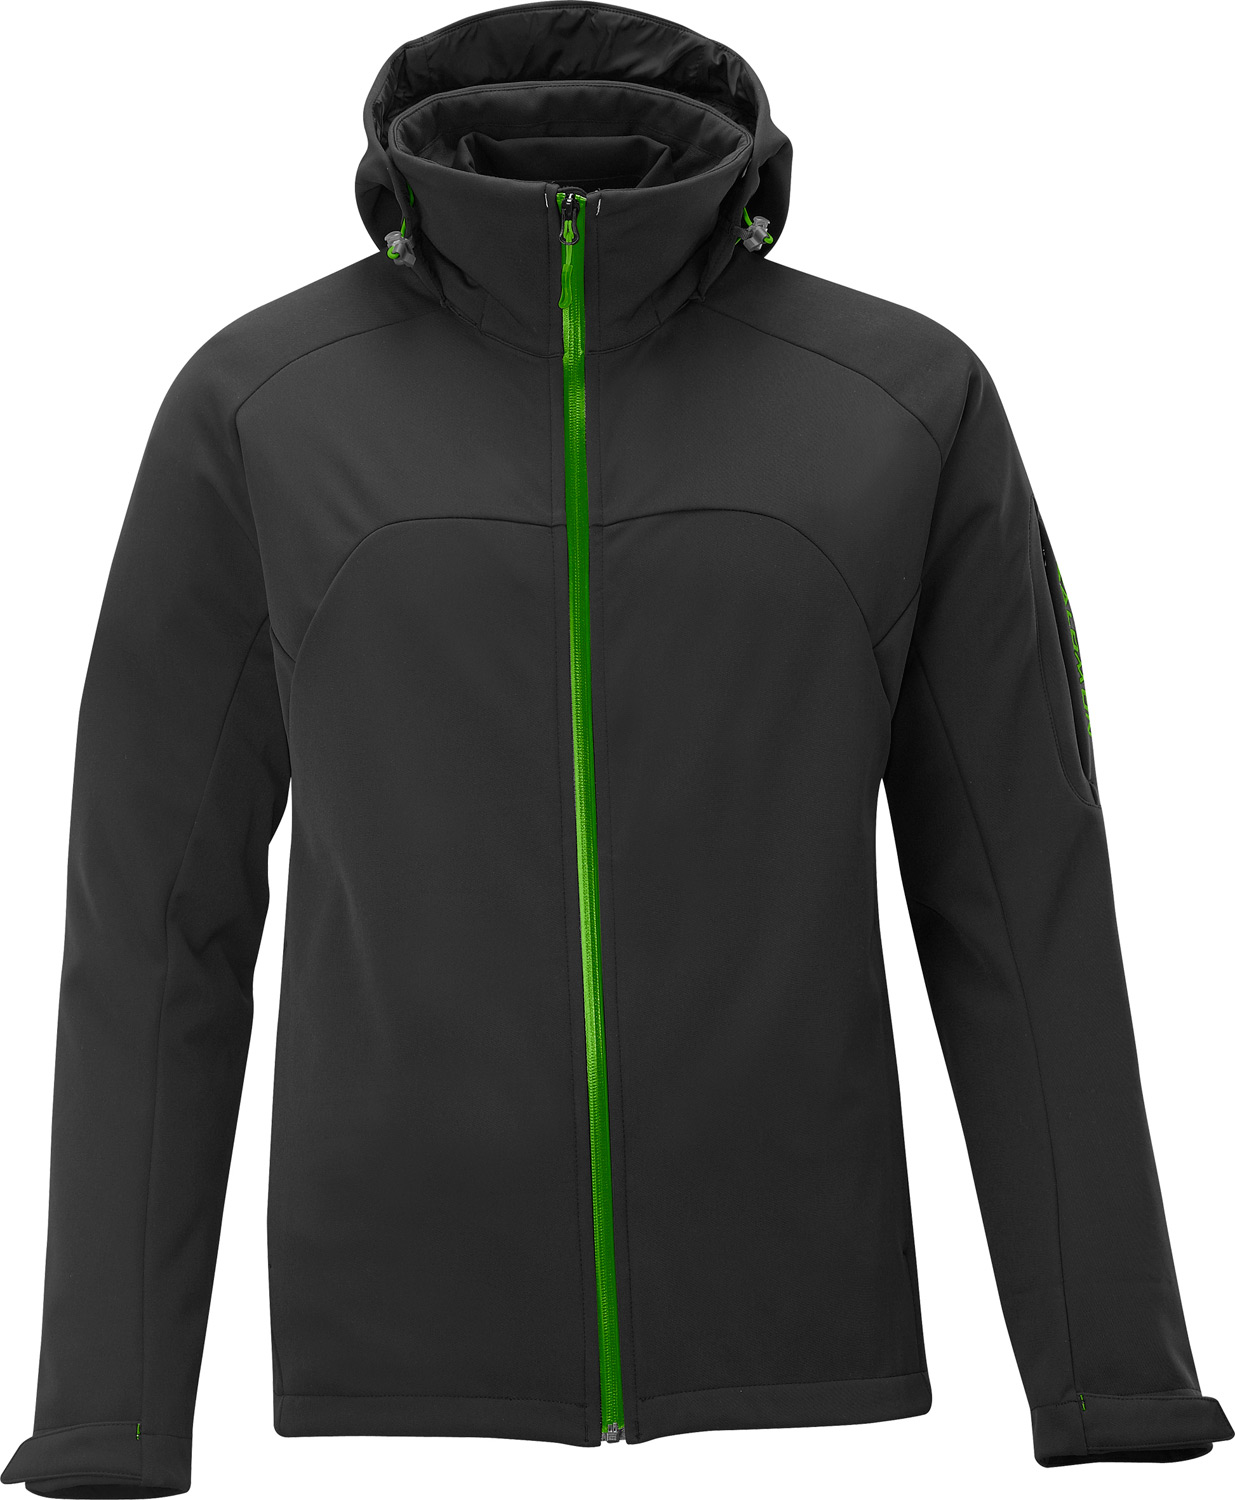 Ski Updated version of Salomon's best selling 3 in 1 jacket, the Salomon Snowtrip 3:1 III Ski Jacket features a ClimaPRO SOFTSHELL outer and stretch softshell inner jacket for maximum versatility.Key Features of the Salomon Snowtrip 3 In 1 III Ski Jacket Black/Light Green X: Softshell ClimaPRO Softshell 3L, ClimaWIND Softshell 3 in 1 ClimaWIND Inner Jacket Removable zip-off hood with 3D adjustment Powderskirt Arm lift pass pocket Inner jacket: PES 86%, EL 15% Body: PA 86%, EL 14% Fit: Active - $220.95